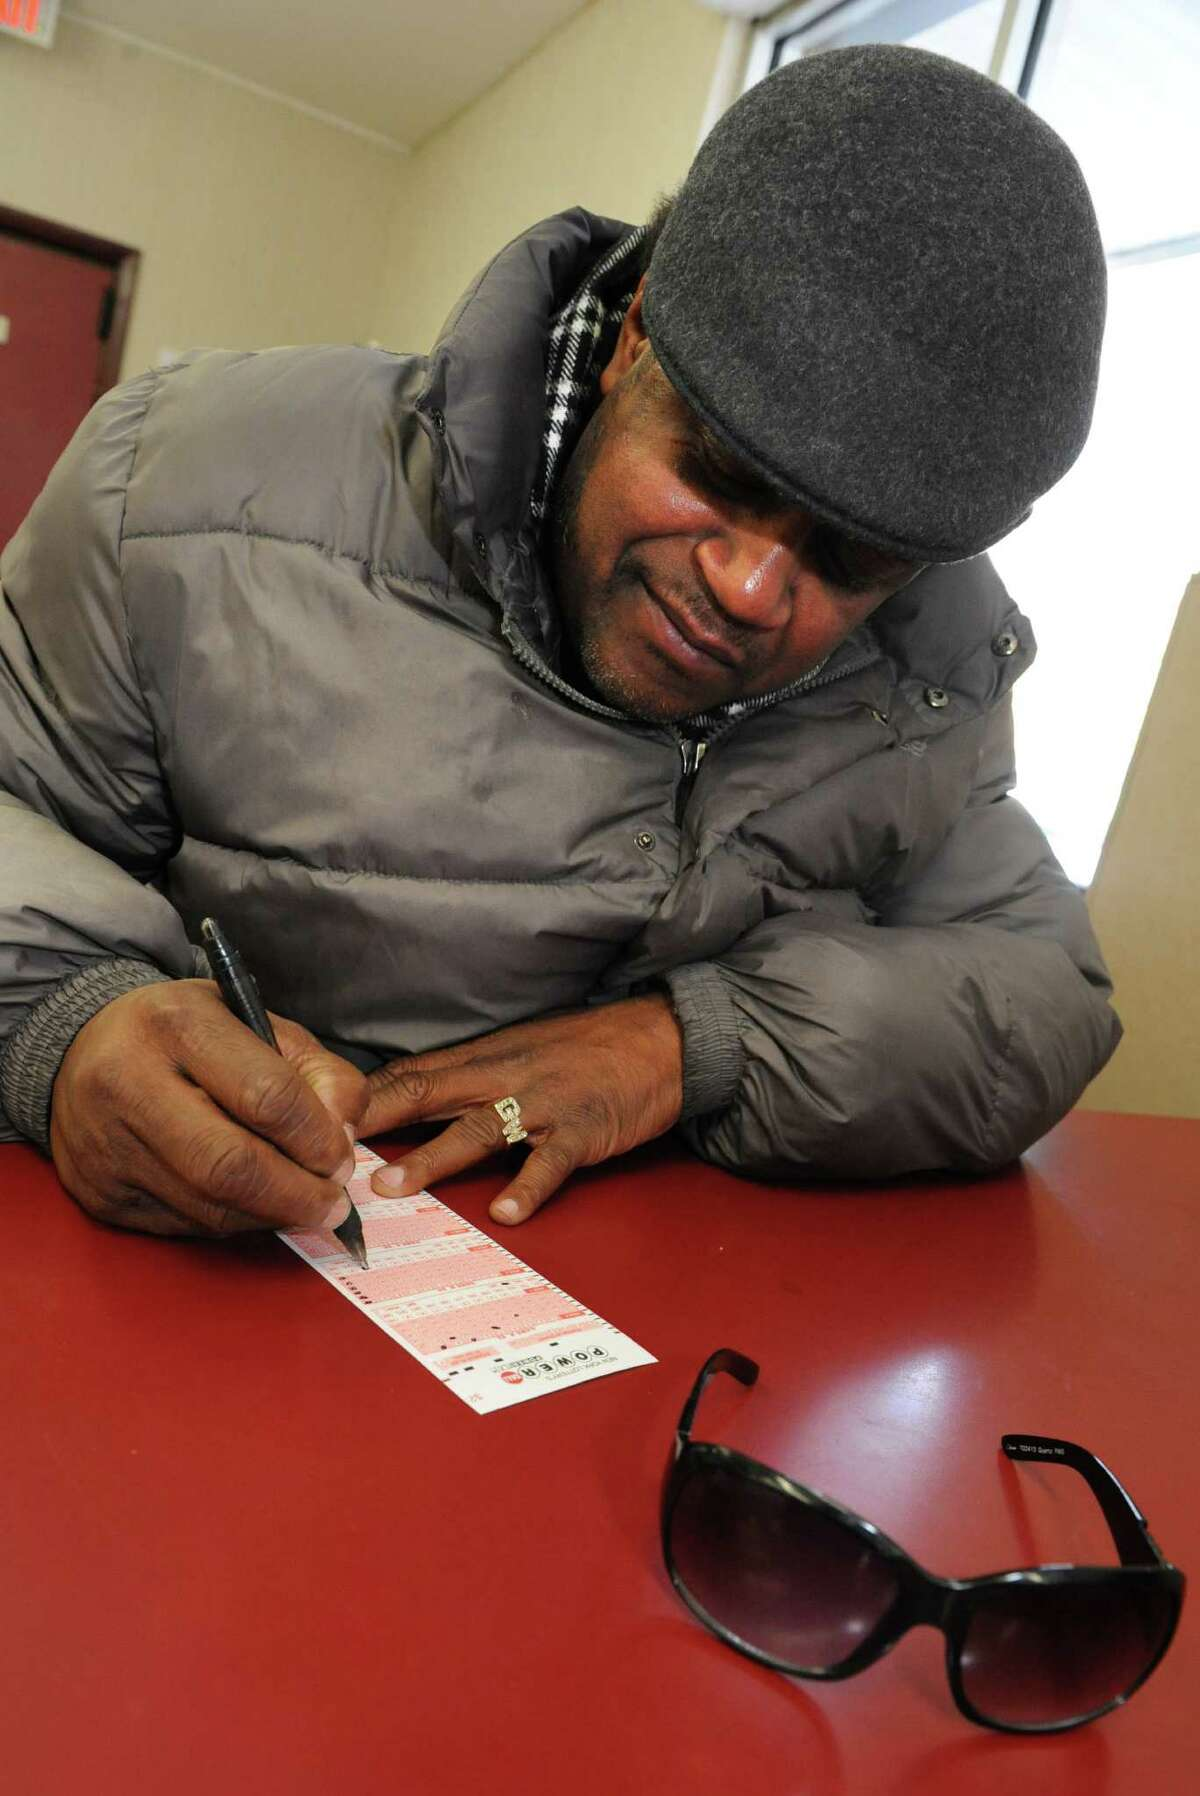 Customer Jay White of Albany fills out a Powerball form at a Stewart's shop on Albany Shaker Road on Friday, Jan. 8, 2016 in Loudonville, N.Y. The Powerball lottery game is now $800 Million. (Lori Van Buren / Times Union)